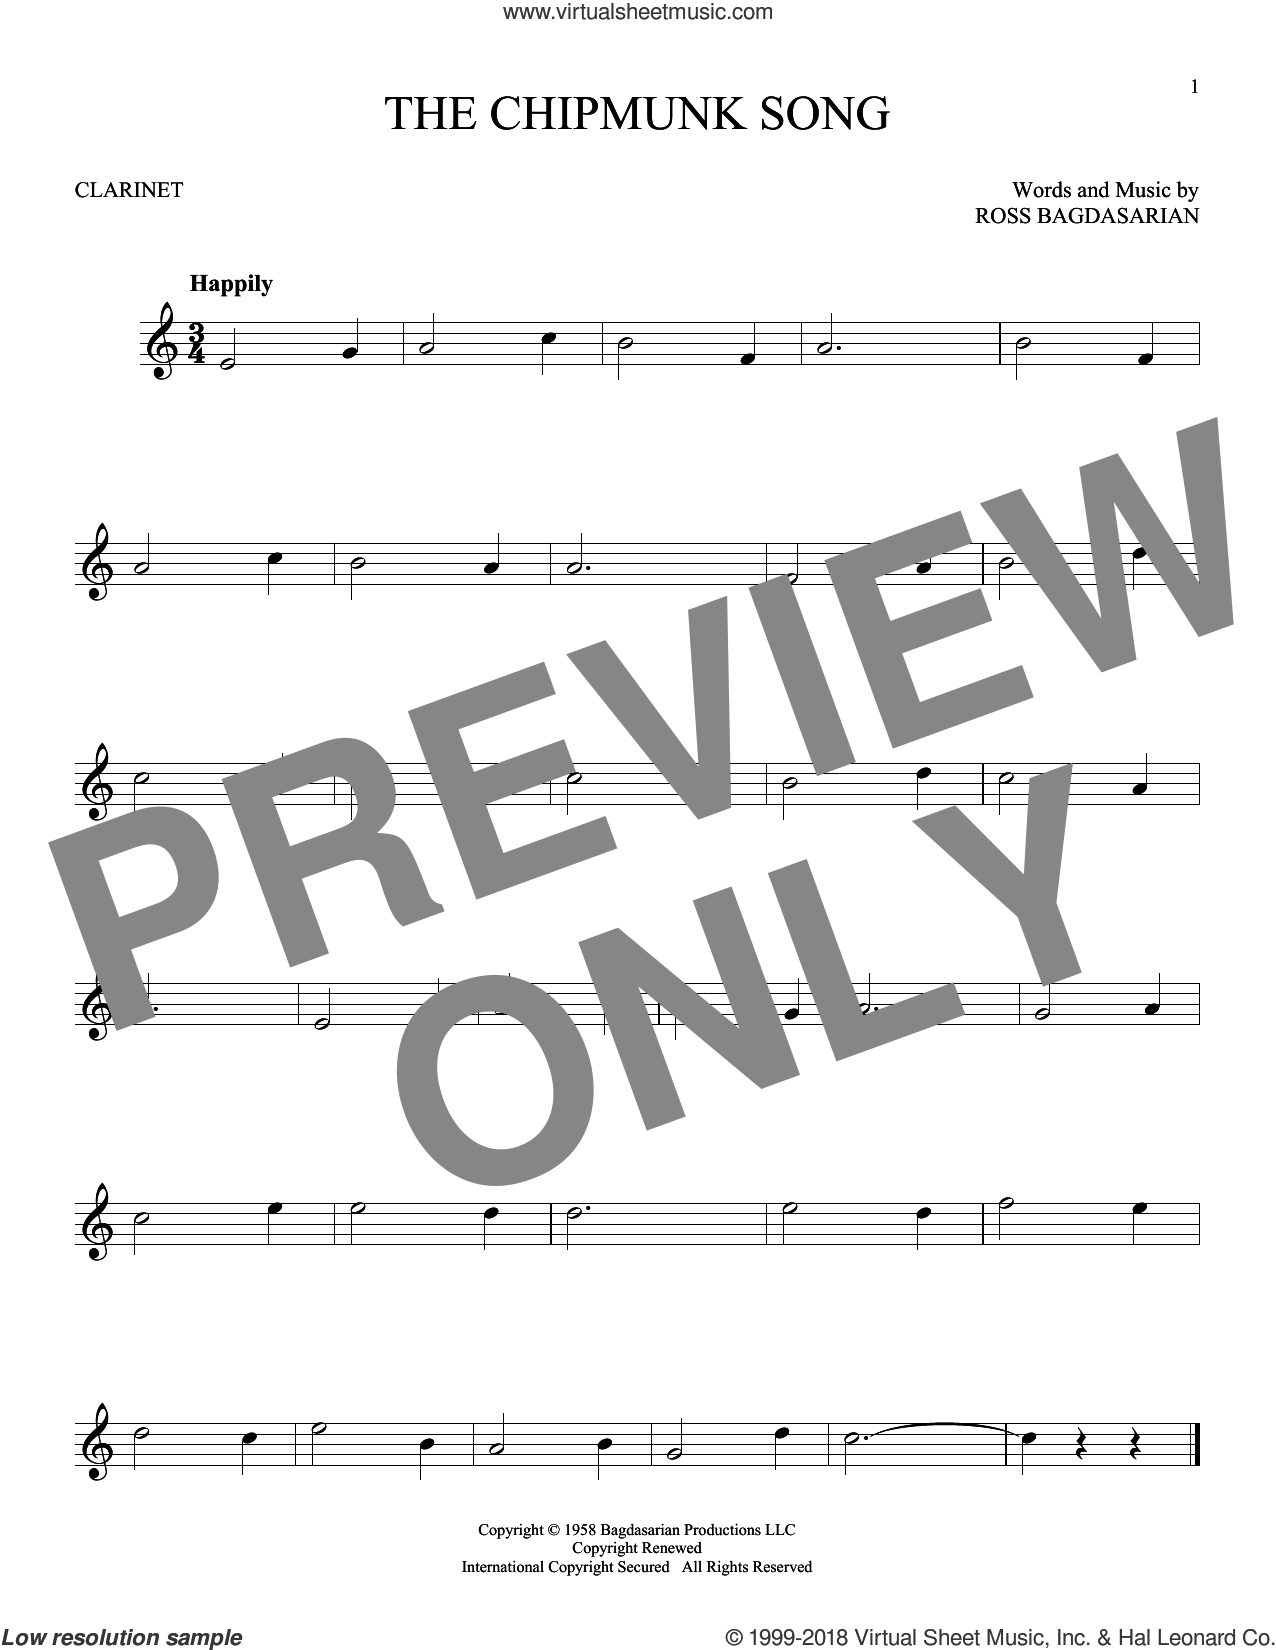 The Chipmunk Song sheet music for clarinet solo by Ross Bagdasarian, Alvin And The Chipmunks and The Chipmunks, intermediate skill level